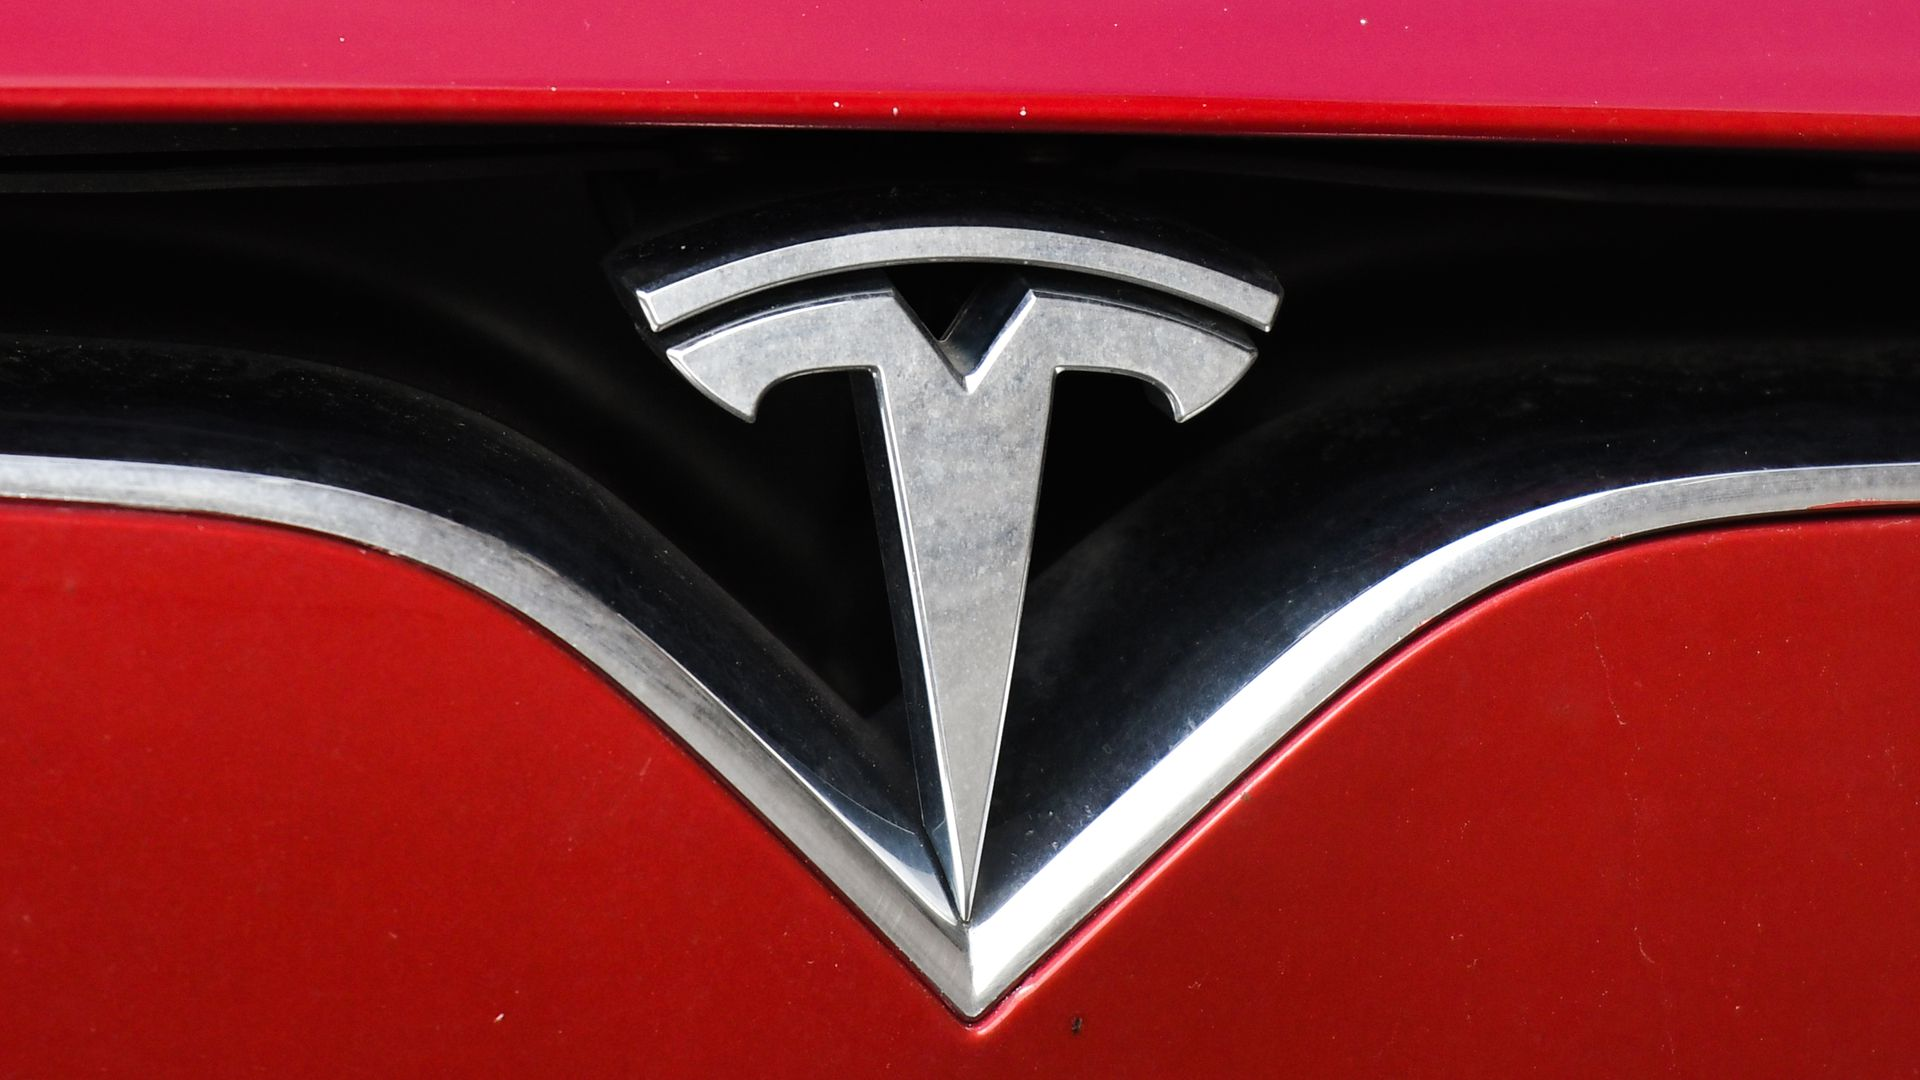 Close-up photo of Tesla logo on a red car.